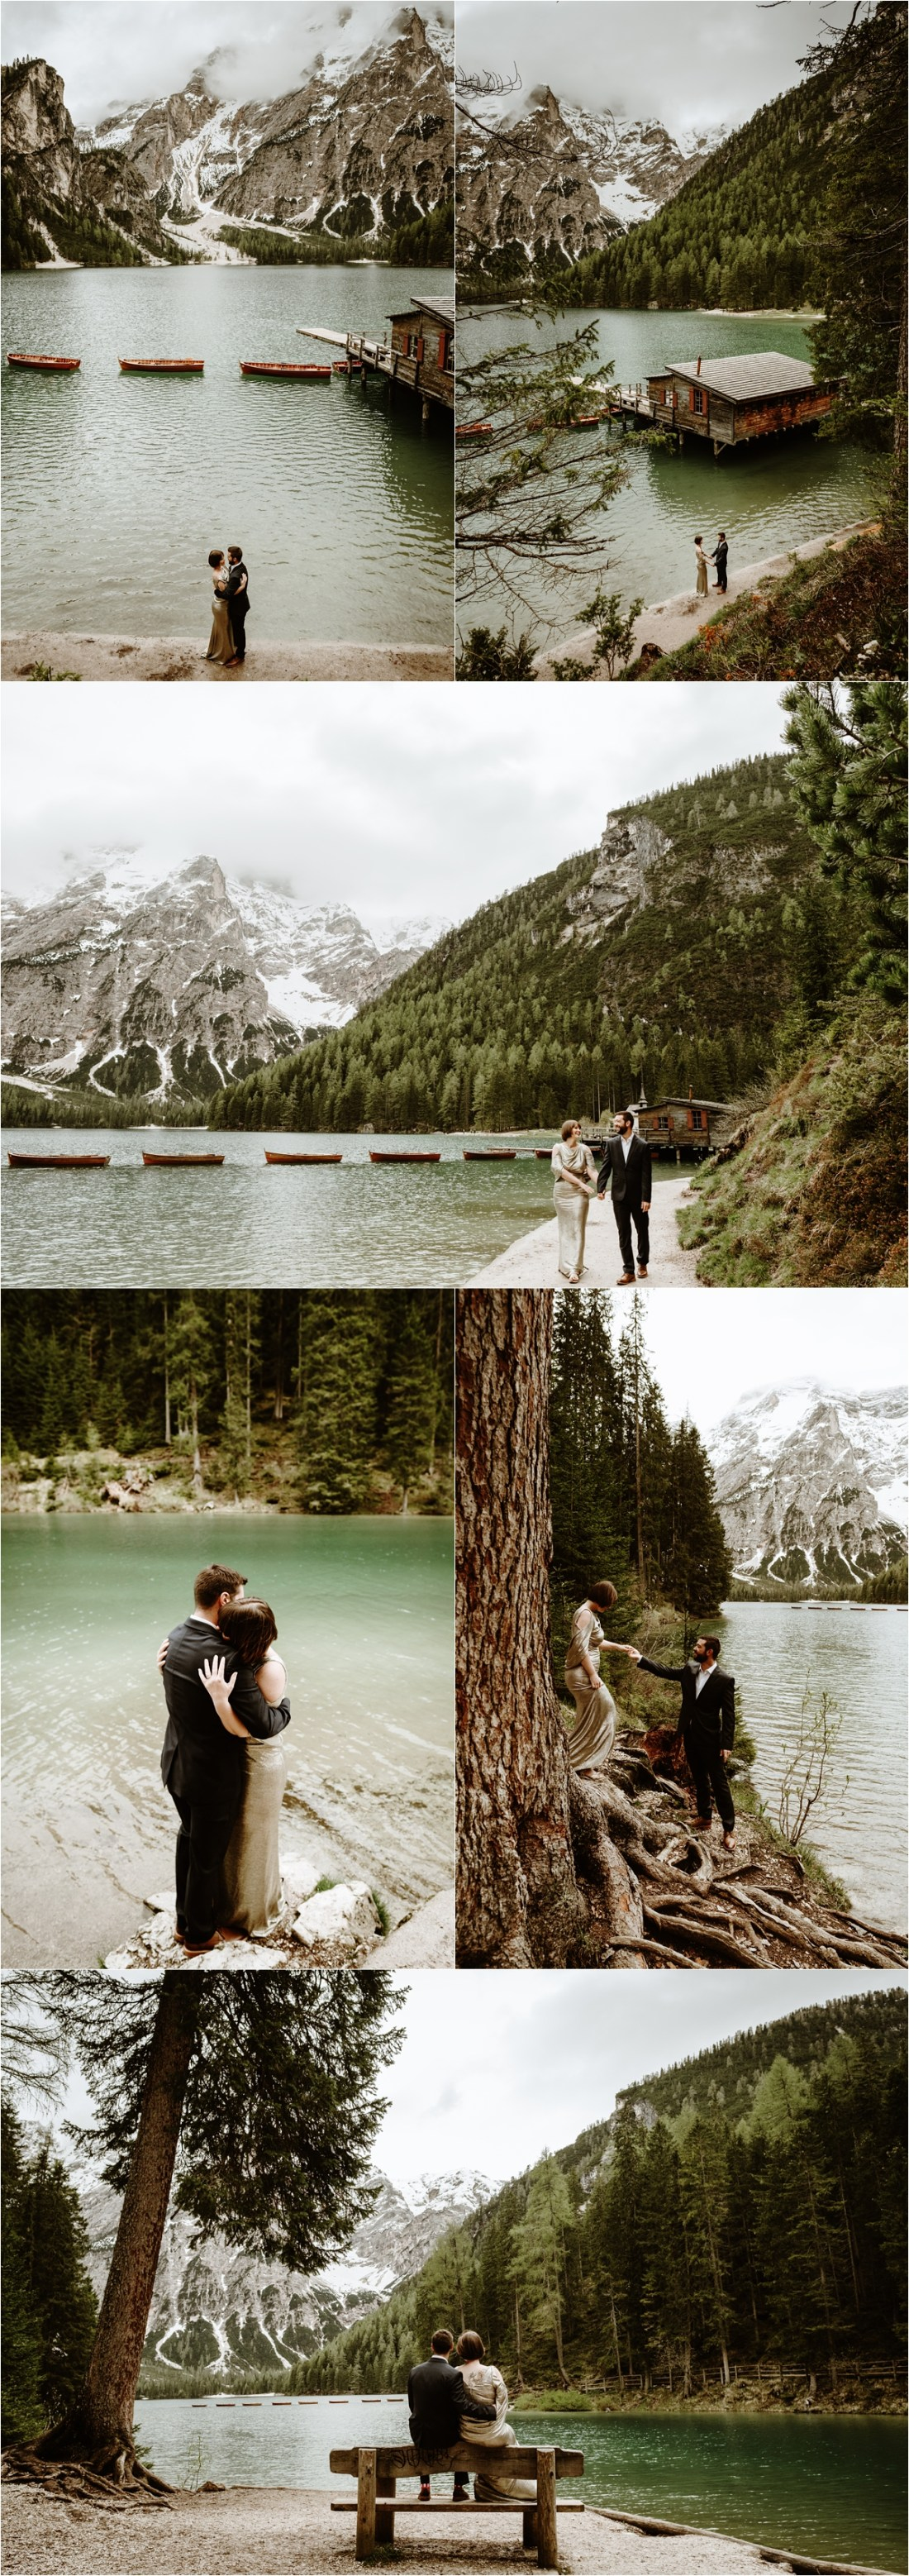 After the rain stops, Laurel & Dustin walk around the shores of Lake Braies in the Italian Alps. Photo by Wild Connections Photography